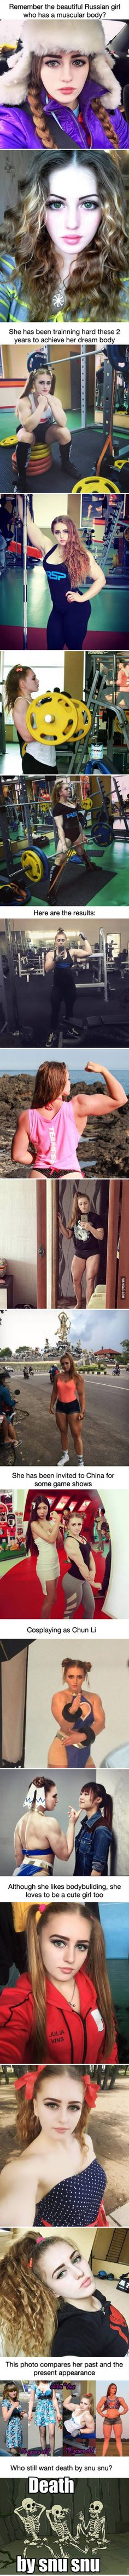 Remember the muscular Russian girl? This is her latest evolution